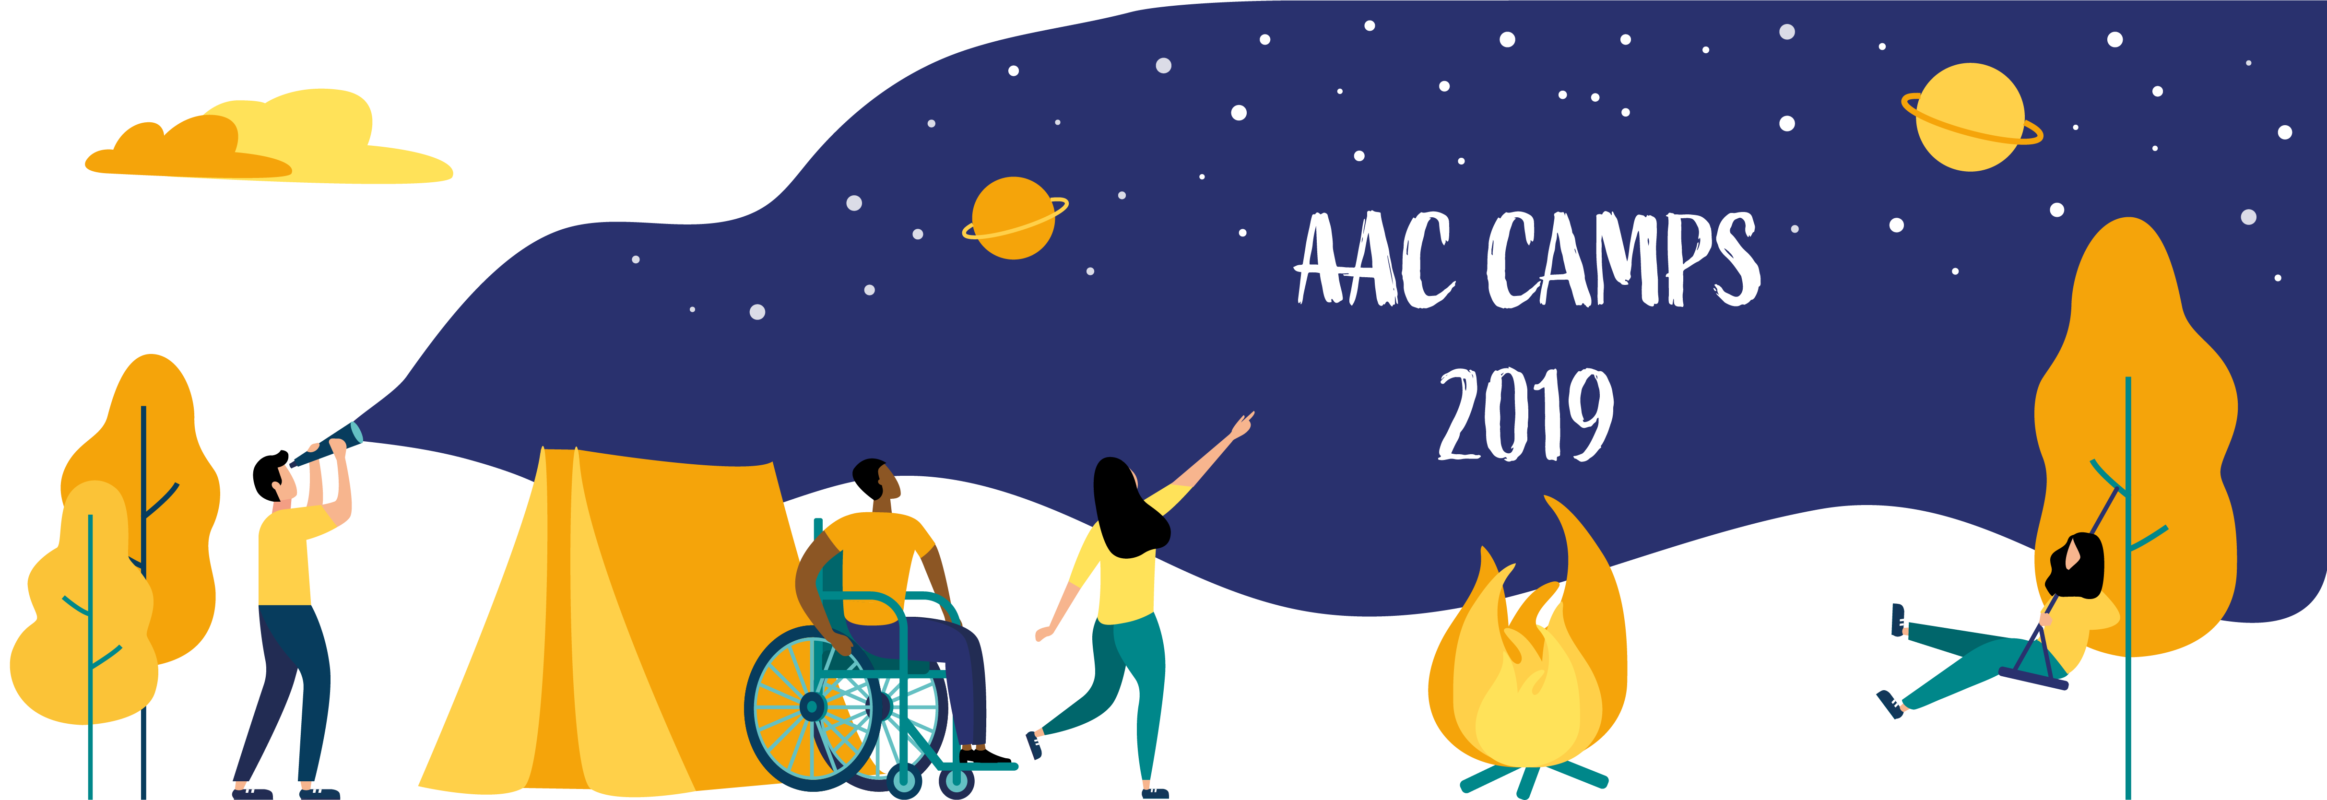 "Illustration of people in a camp setting with text ""AAC Camps 2019"""